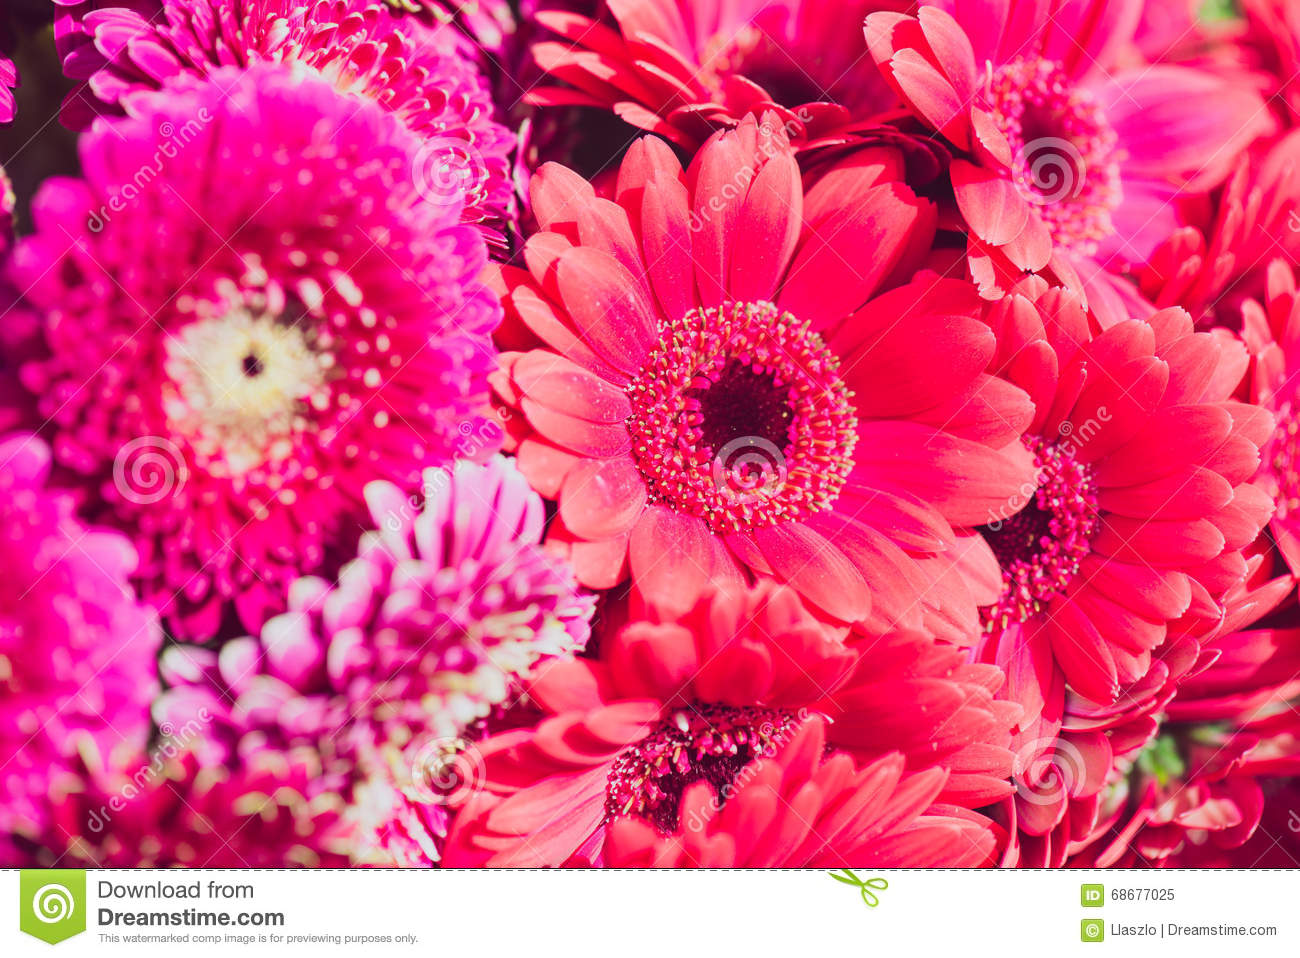 Pink floral wallpaper stock image image of flowers pattern 68677025 download comp mightylinksfo